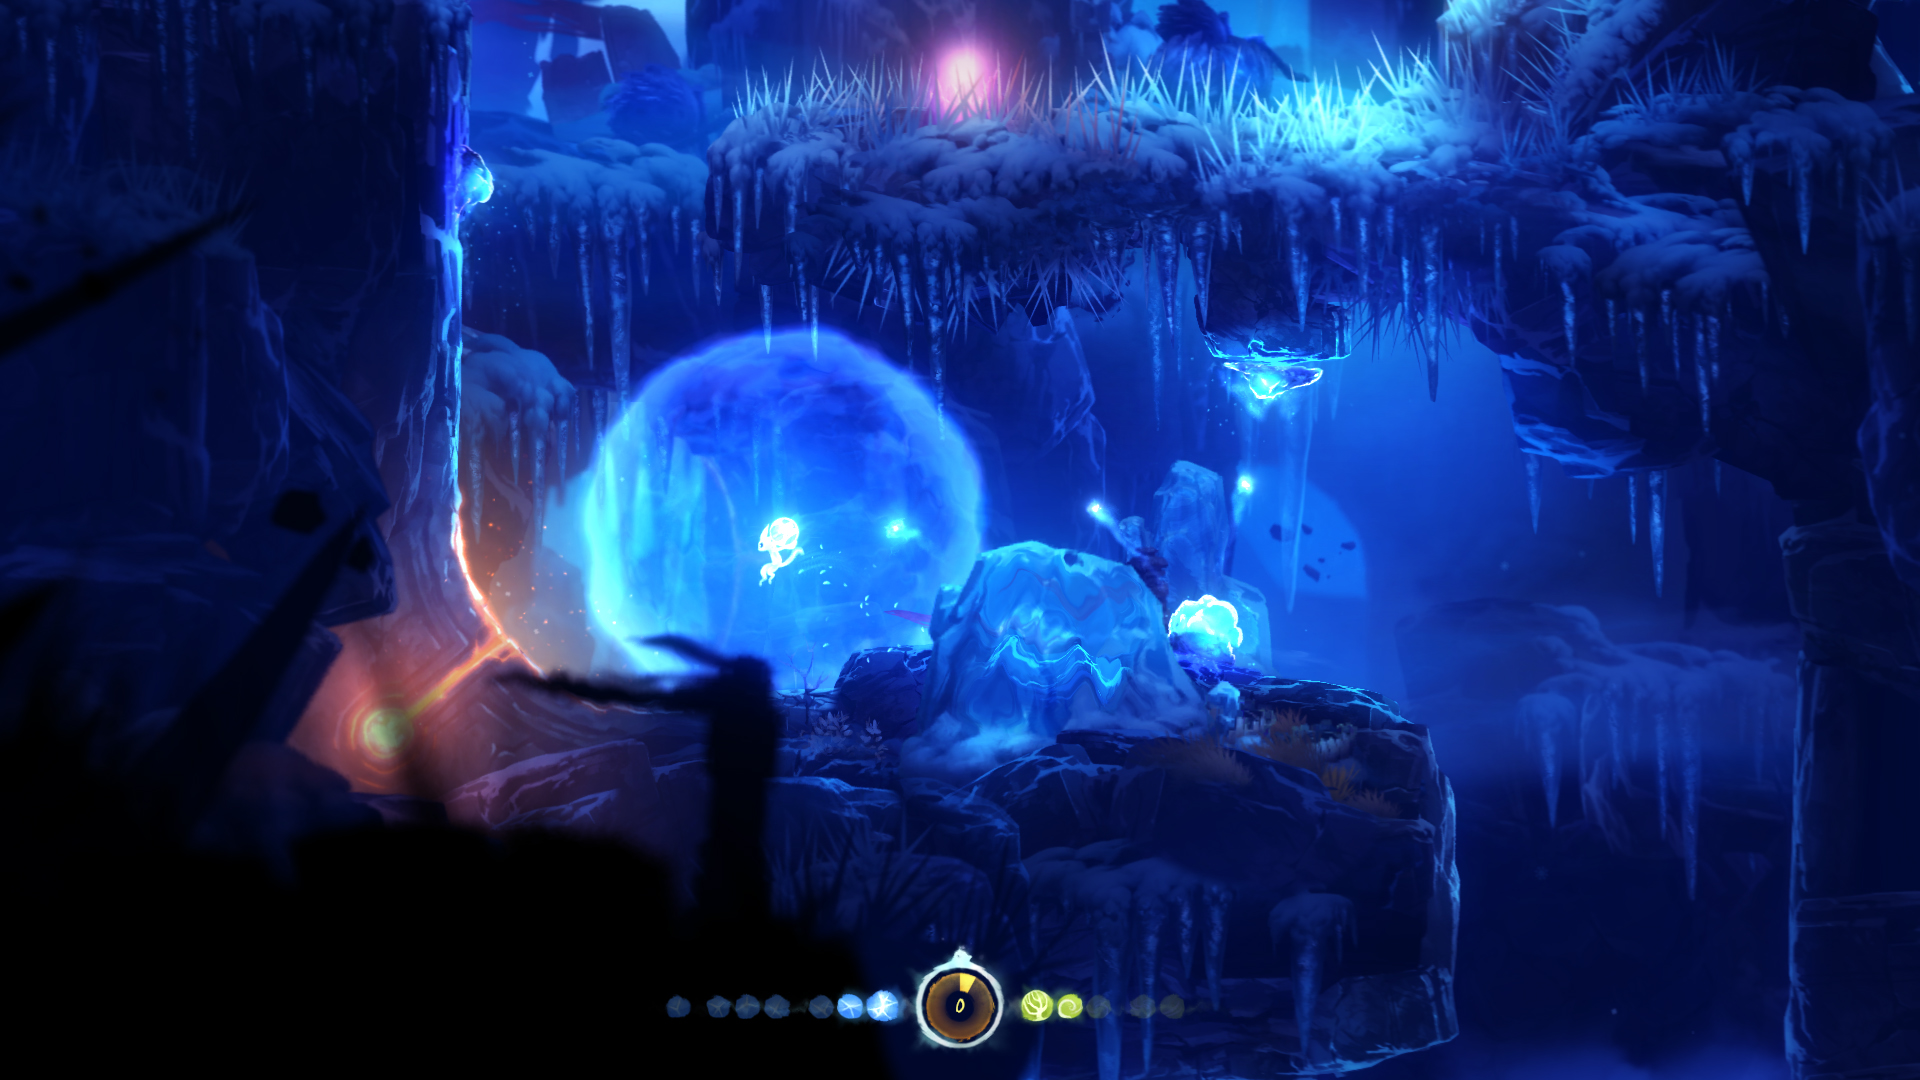 Ori and the Blind Forest will release on PC and Xbox One March 11